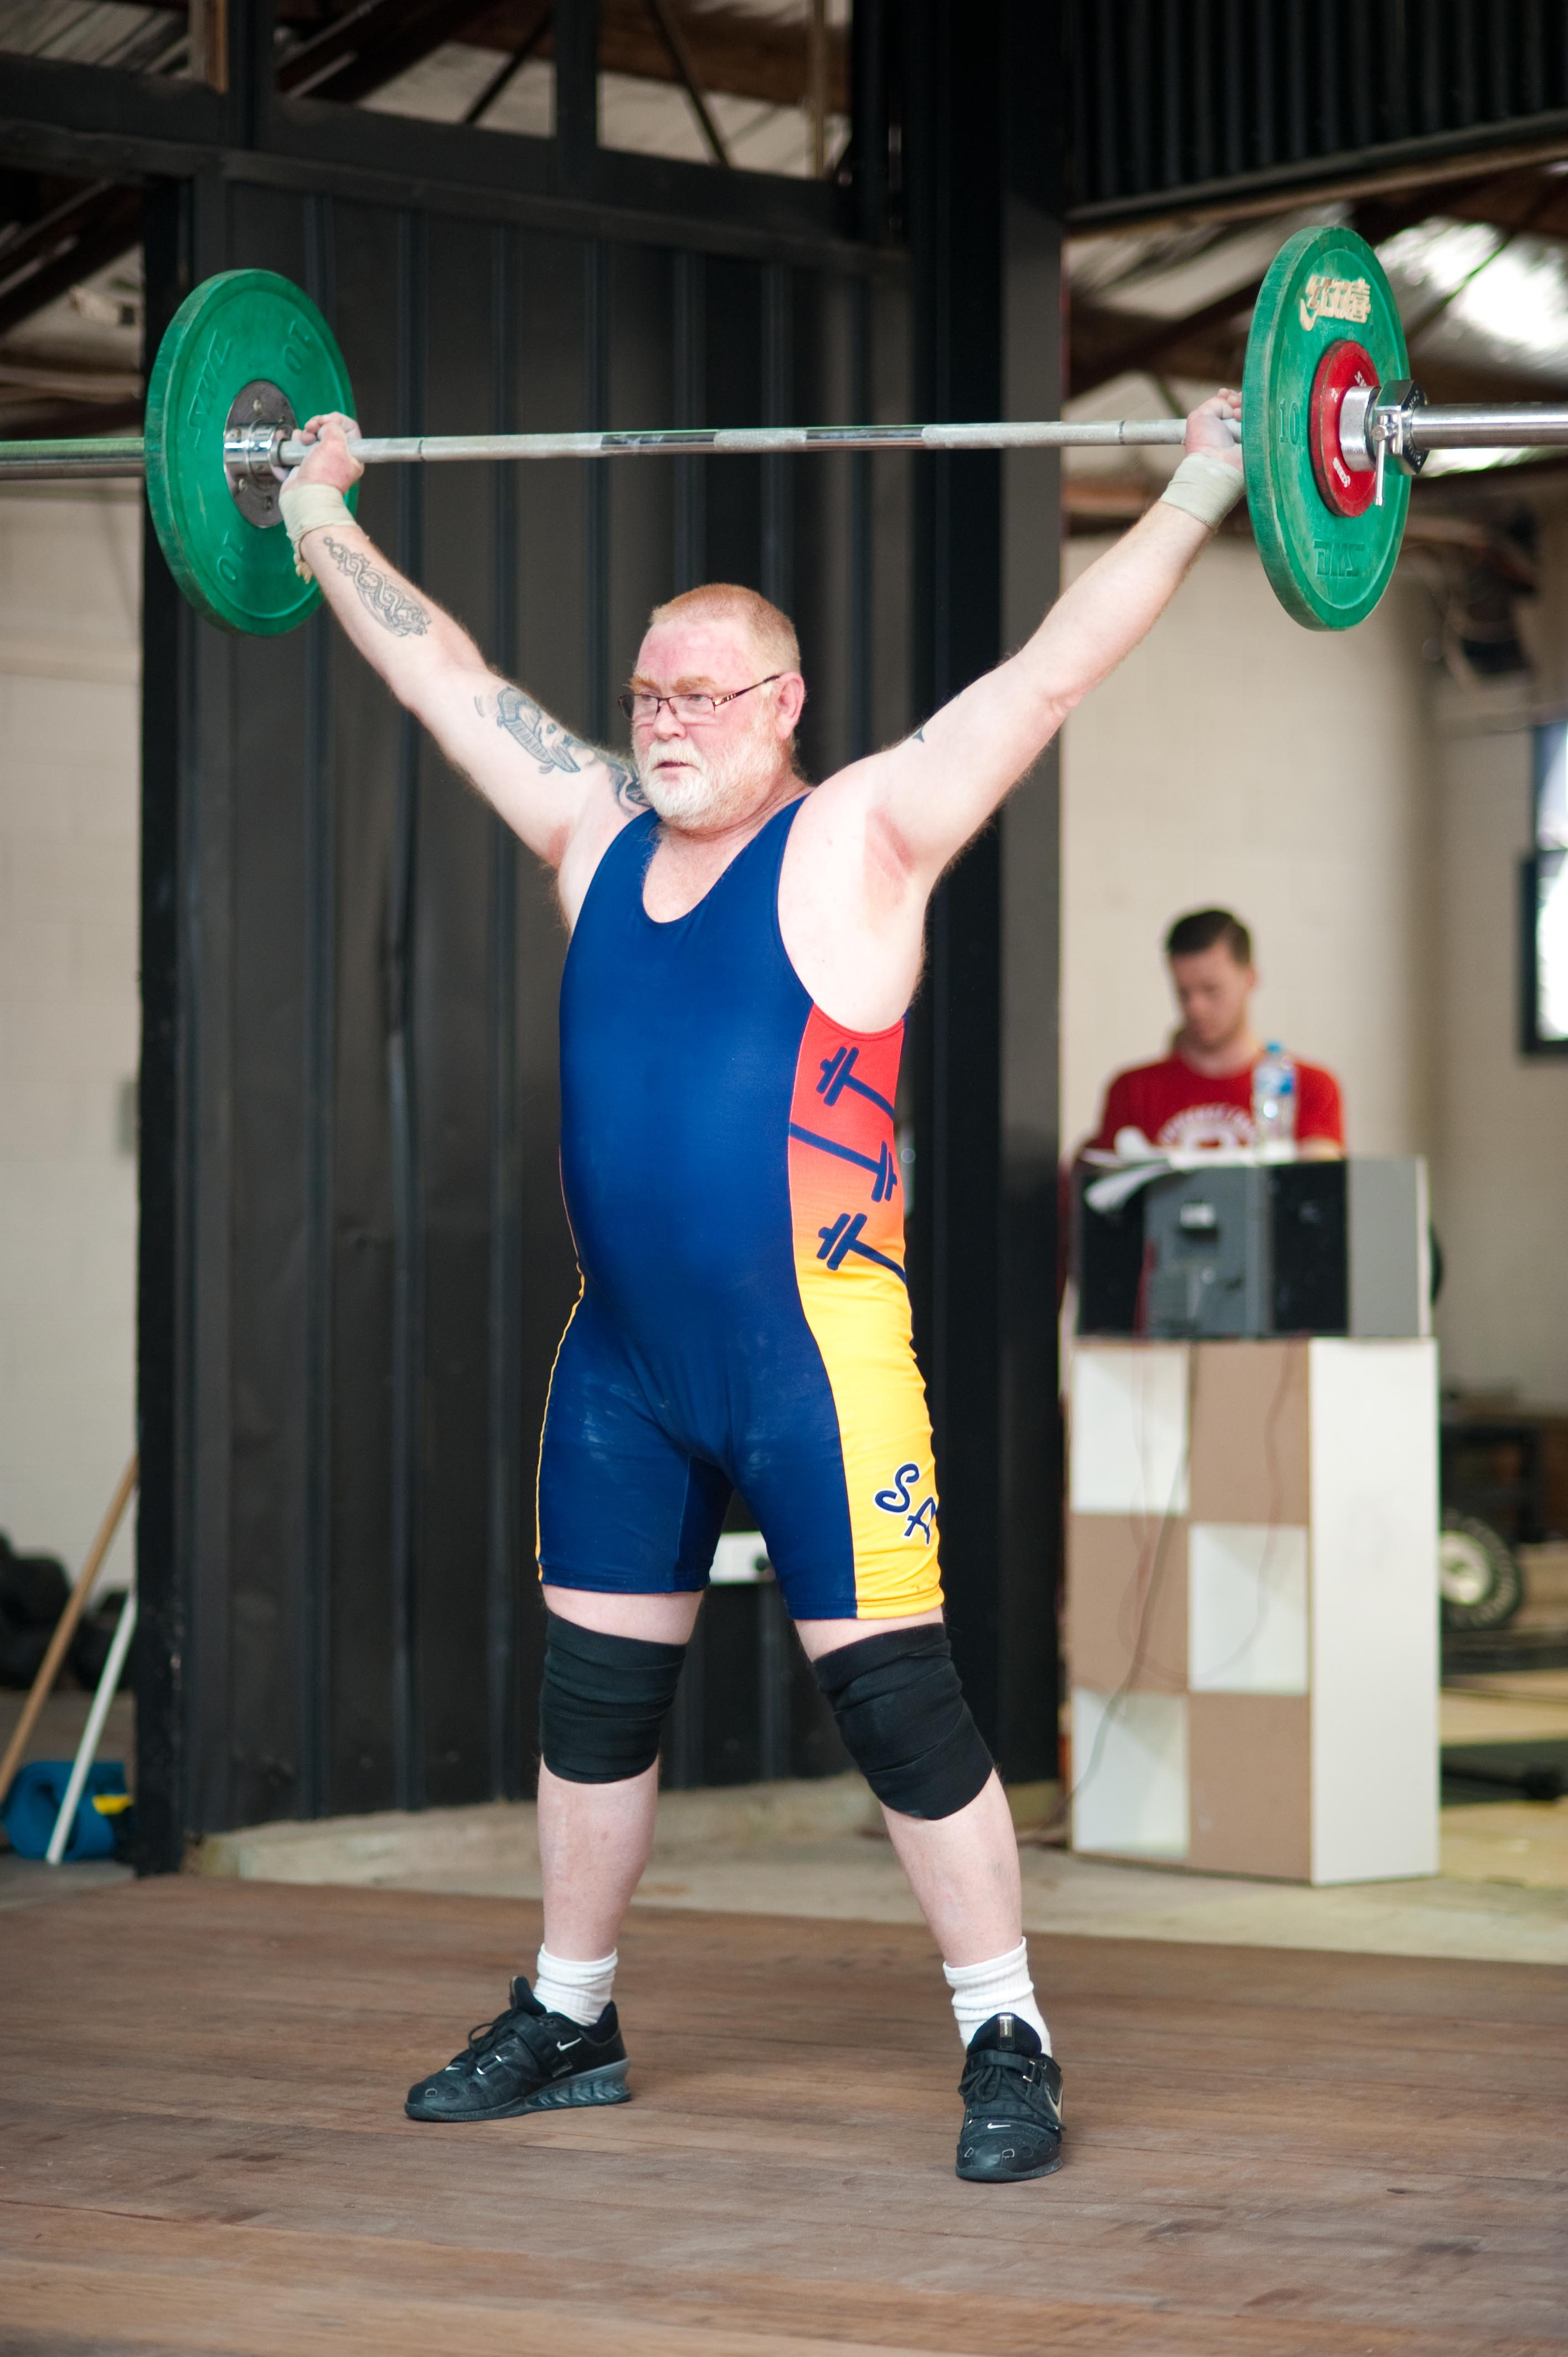 south n weightlifting association > getting involved there is a yearly awf national masters championships iwf world masters championship and every two years world masters games masters athletes are finding